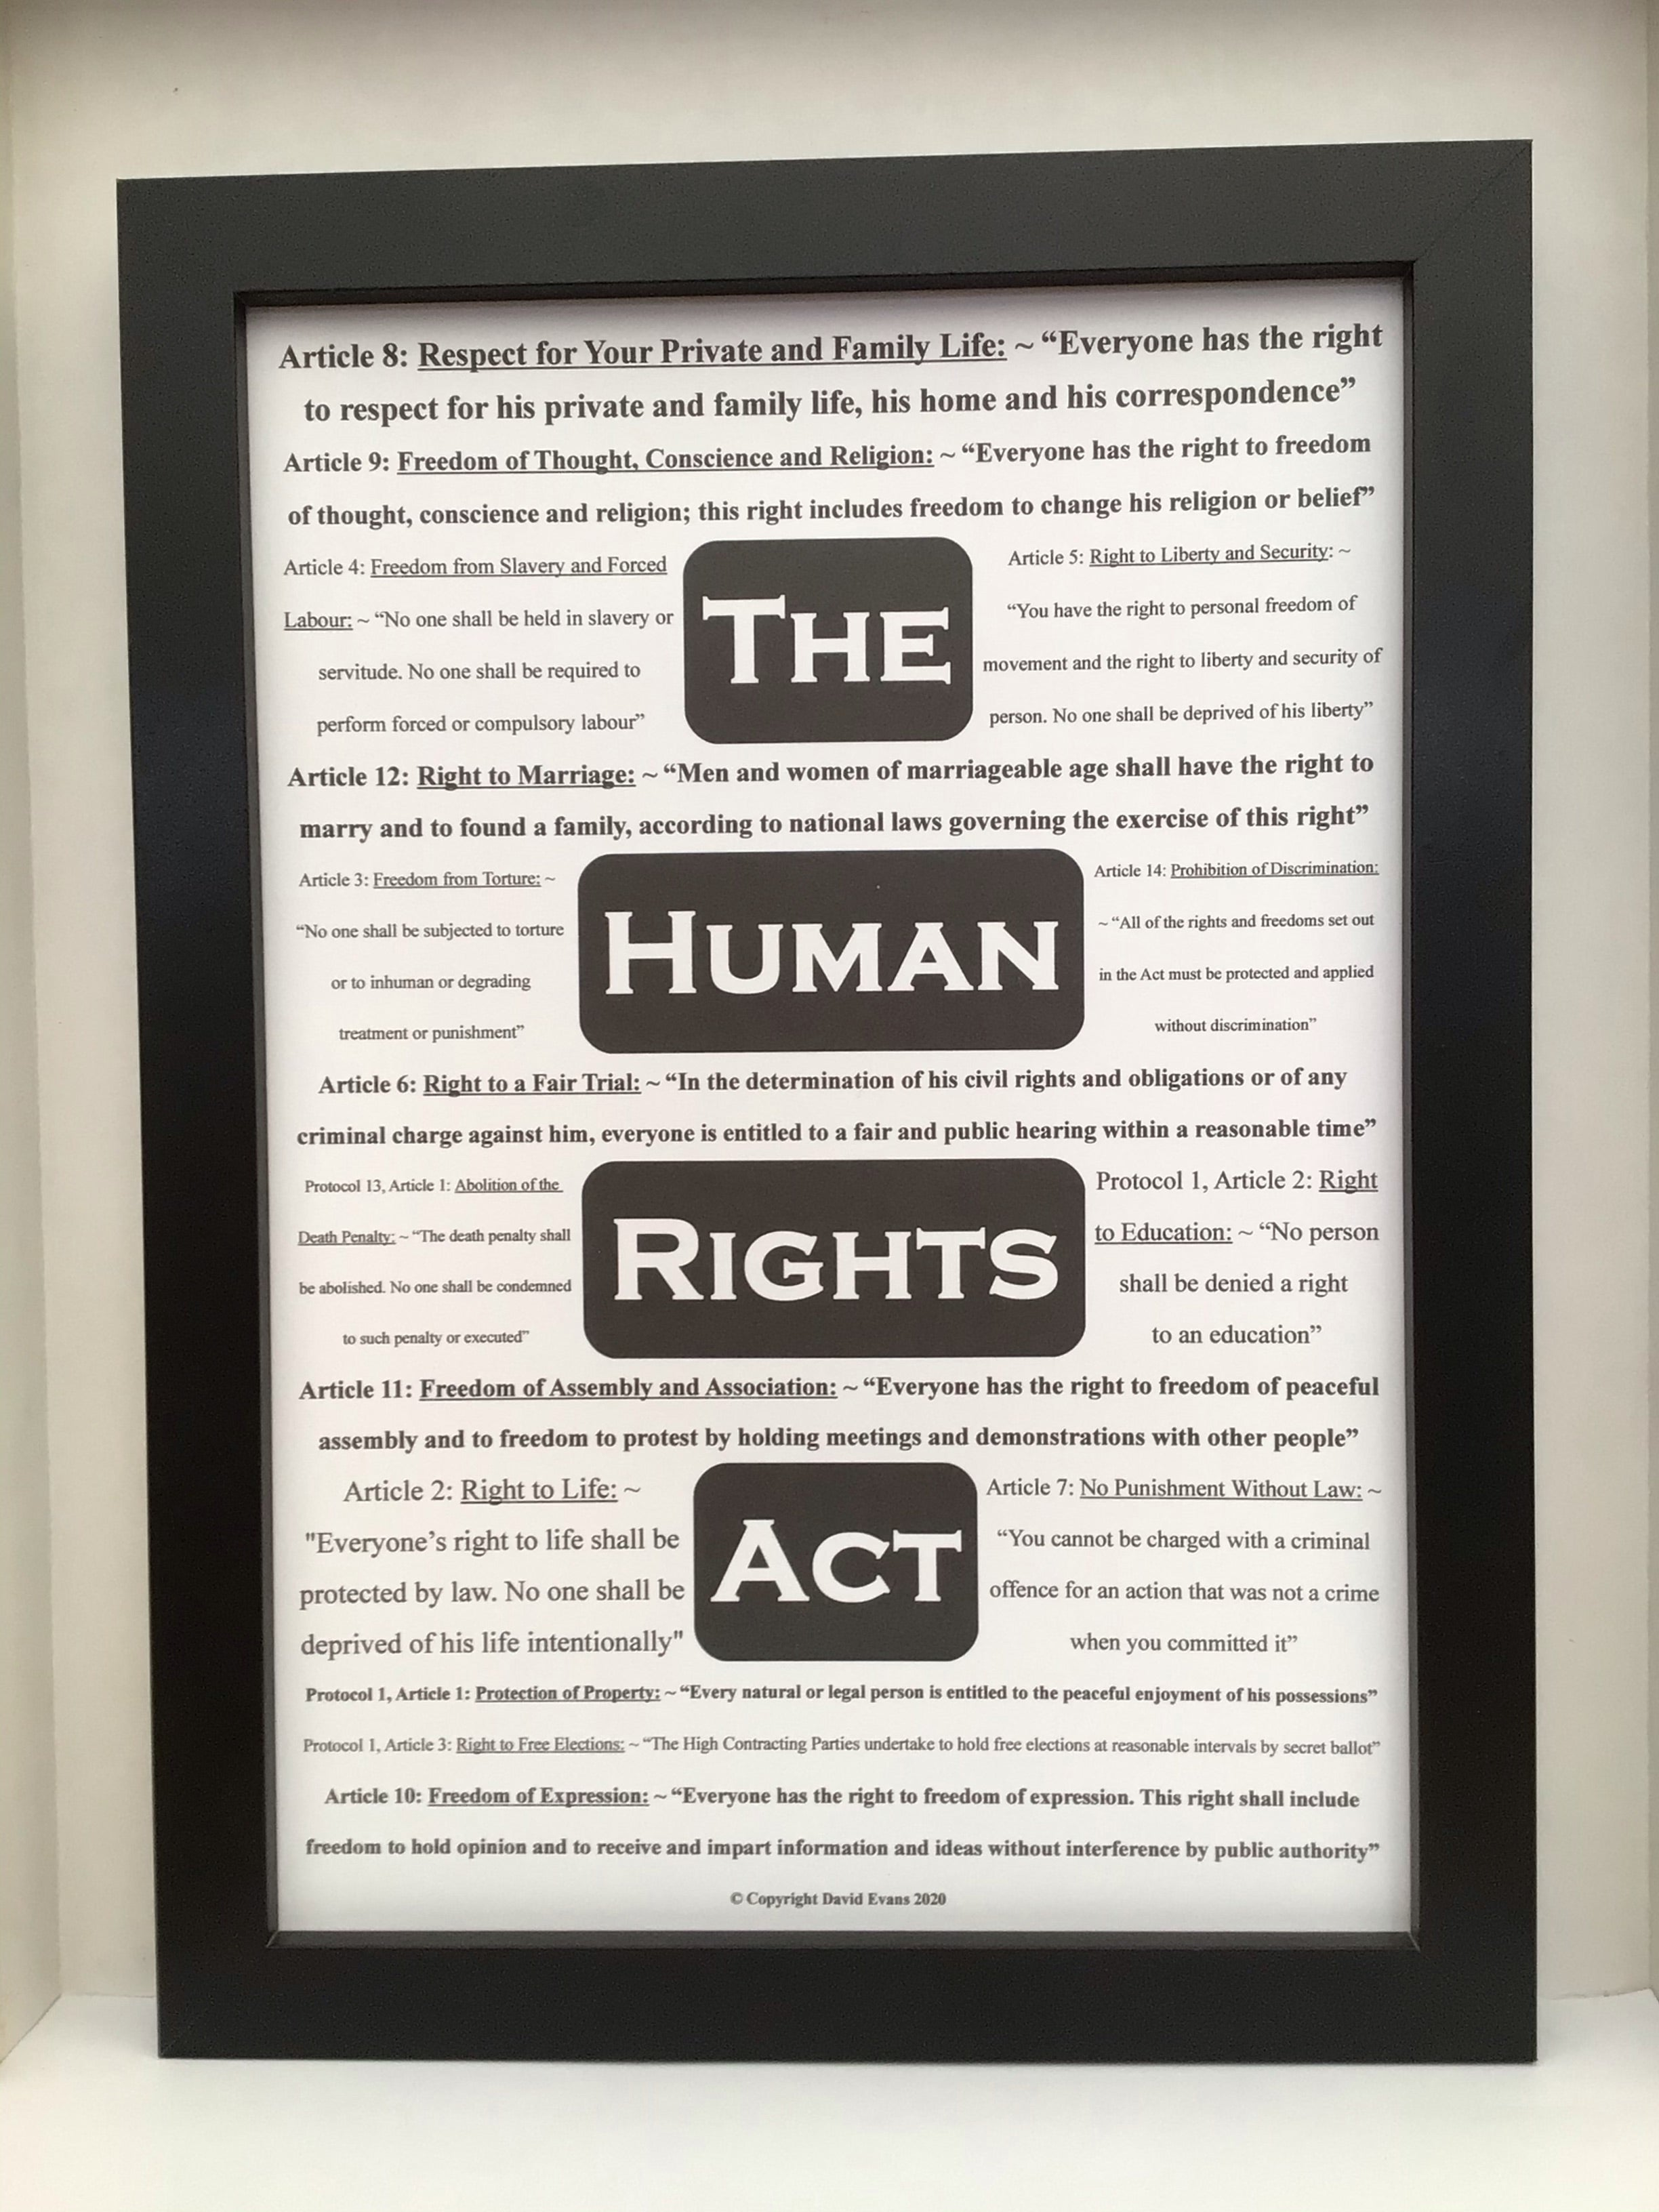 Striking Informative poster which features the 16 rights protected by law through the Human Rights Act